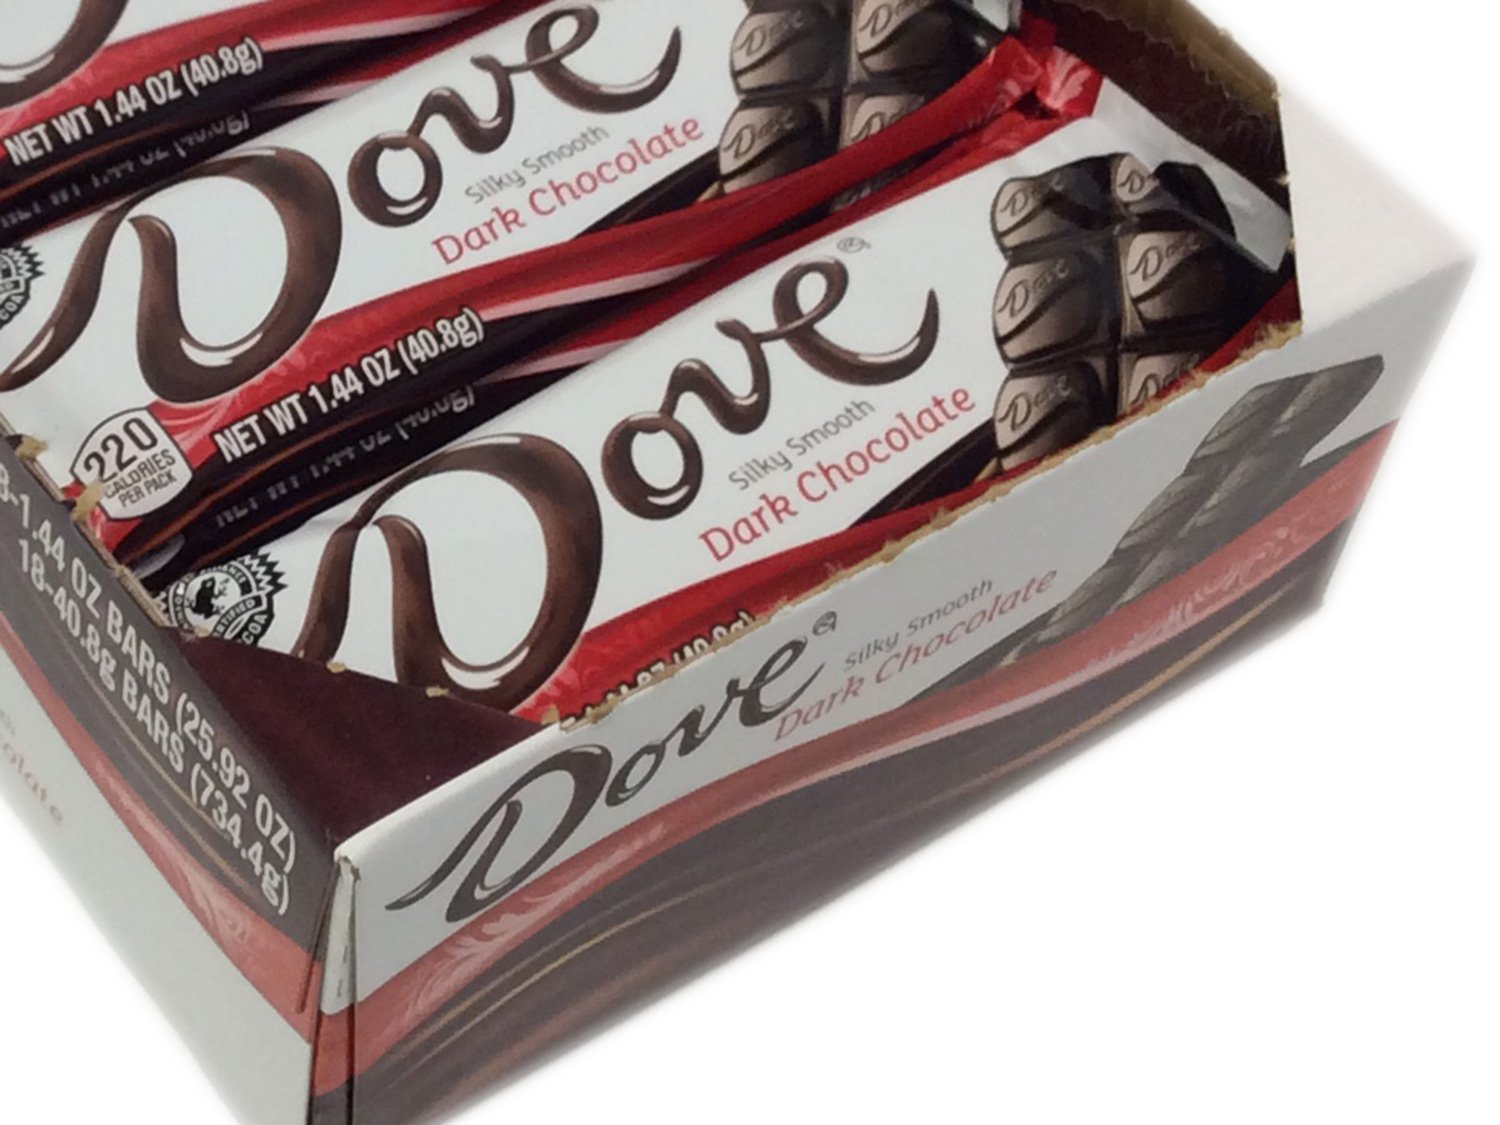 Dove Dark Chocolate 1.44 oz bar - box of 18